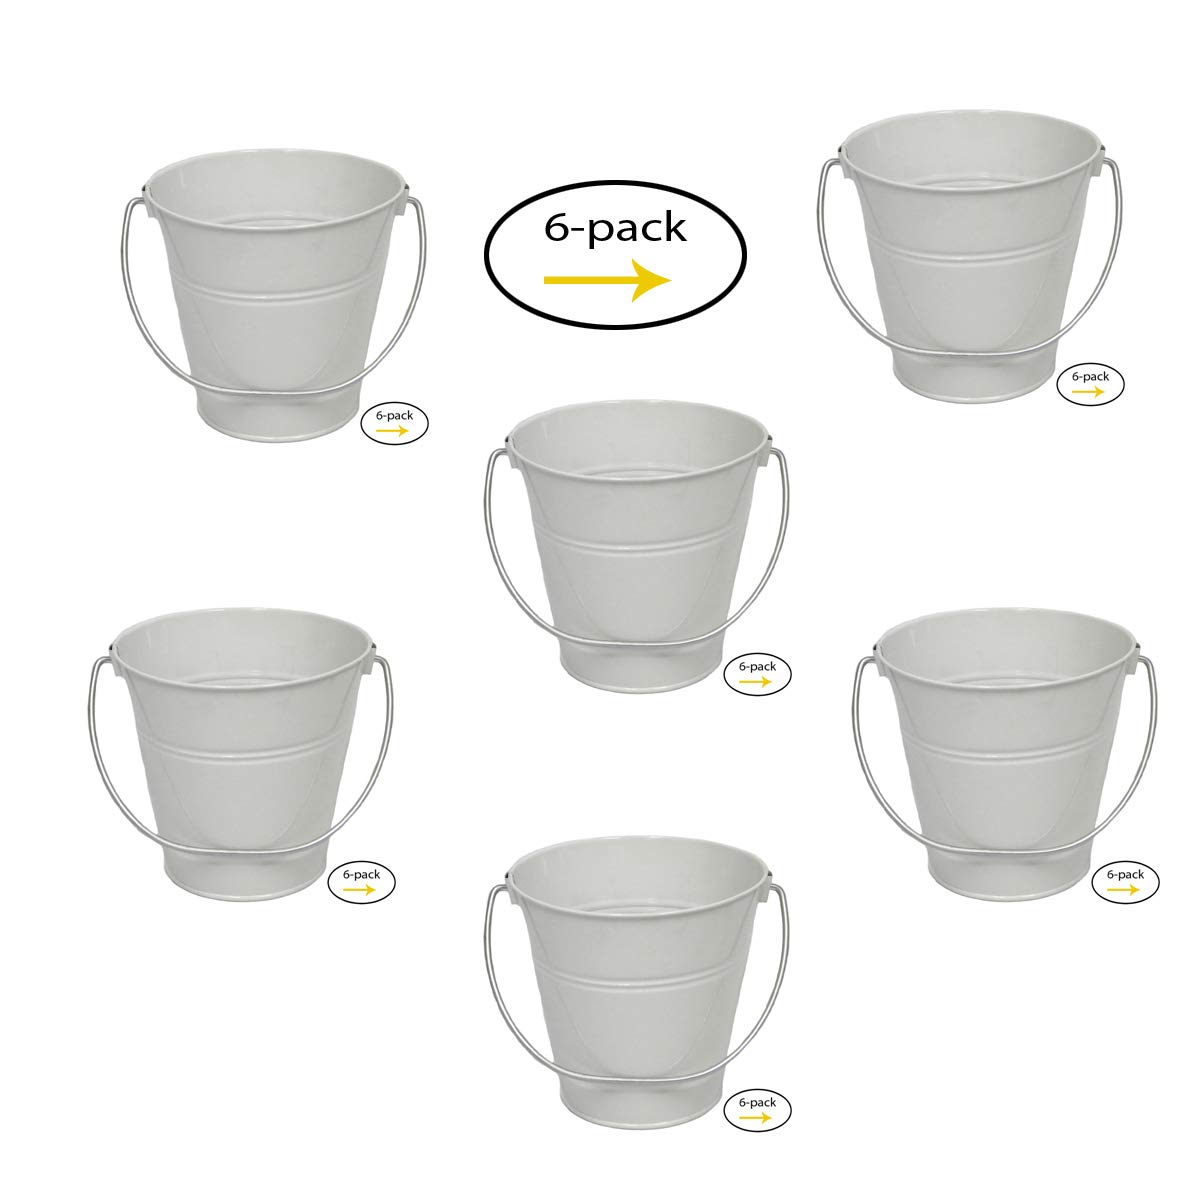 ITALIA 6-Pack Metal Bucket Color White Size 4.3x 4.3